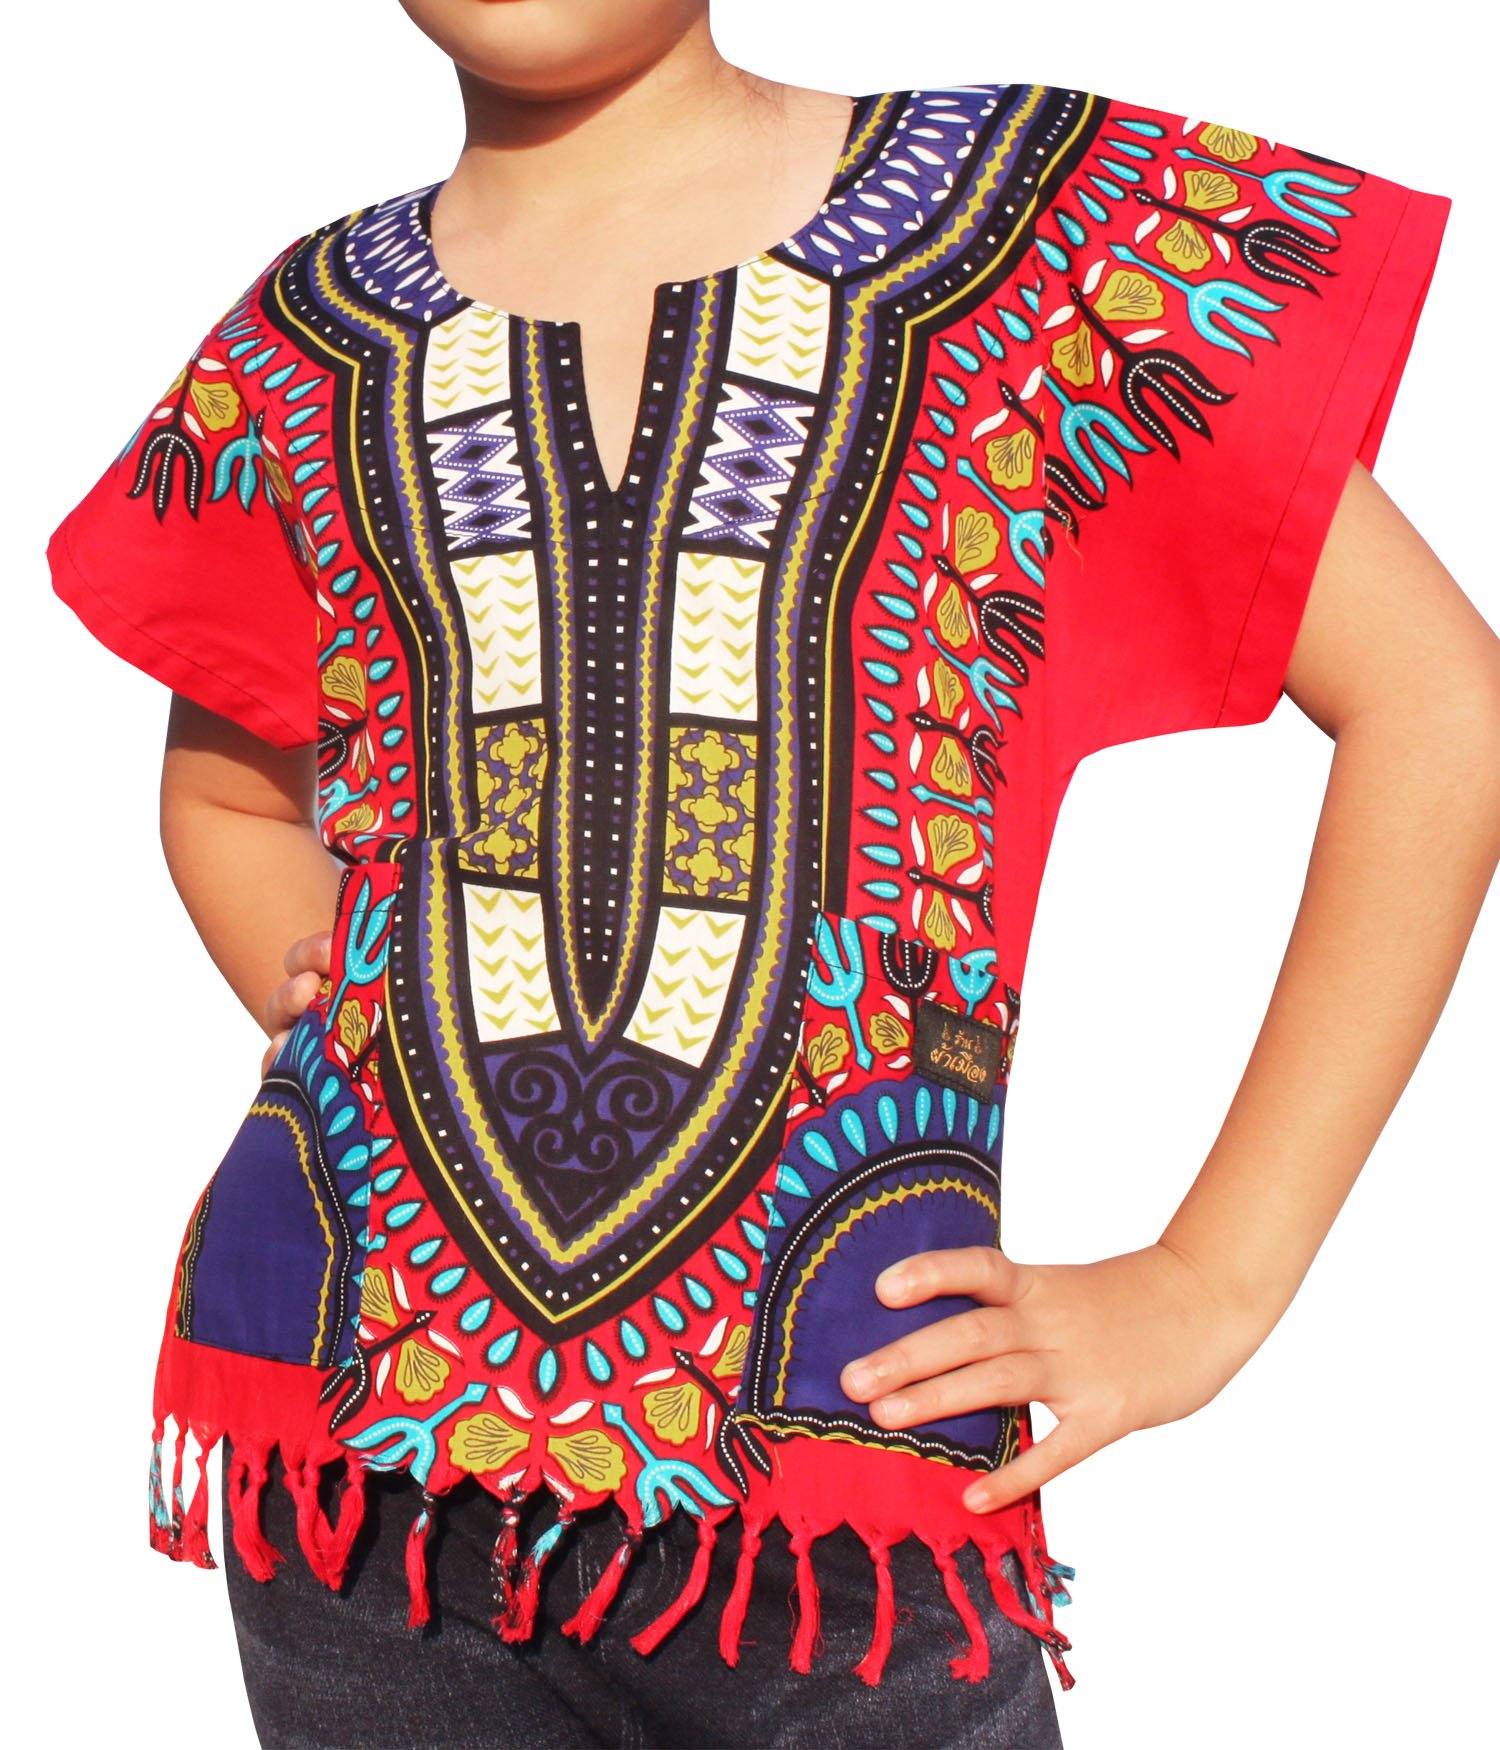 Raan Pah Muang RaanPahMuang Branded Cotton Childs Dashiki Shirt Tassels and Pockets Bold Colours, 8-10 Years, Red